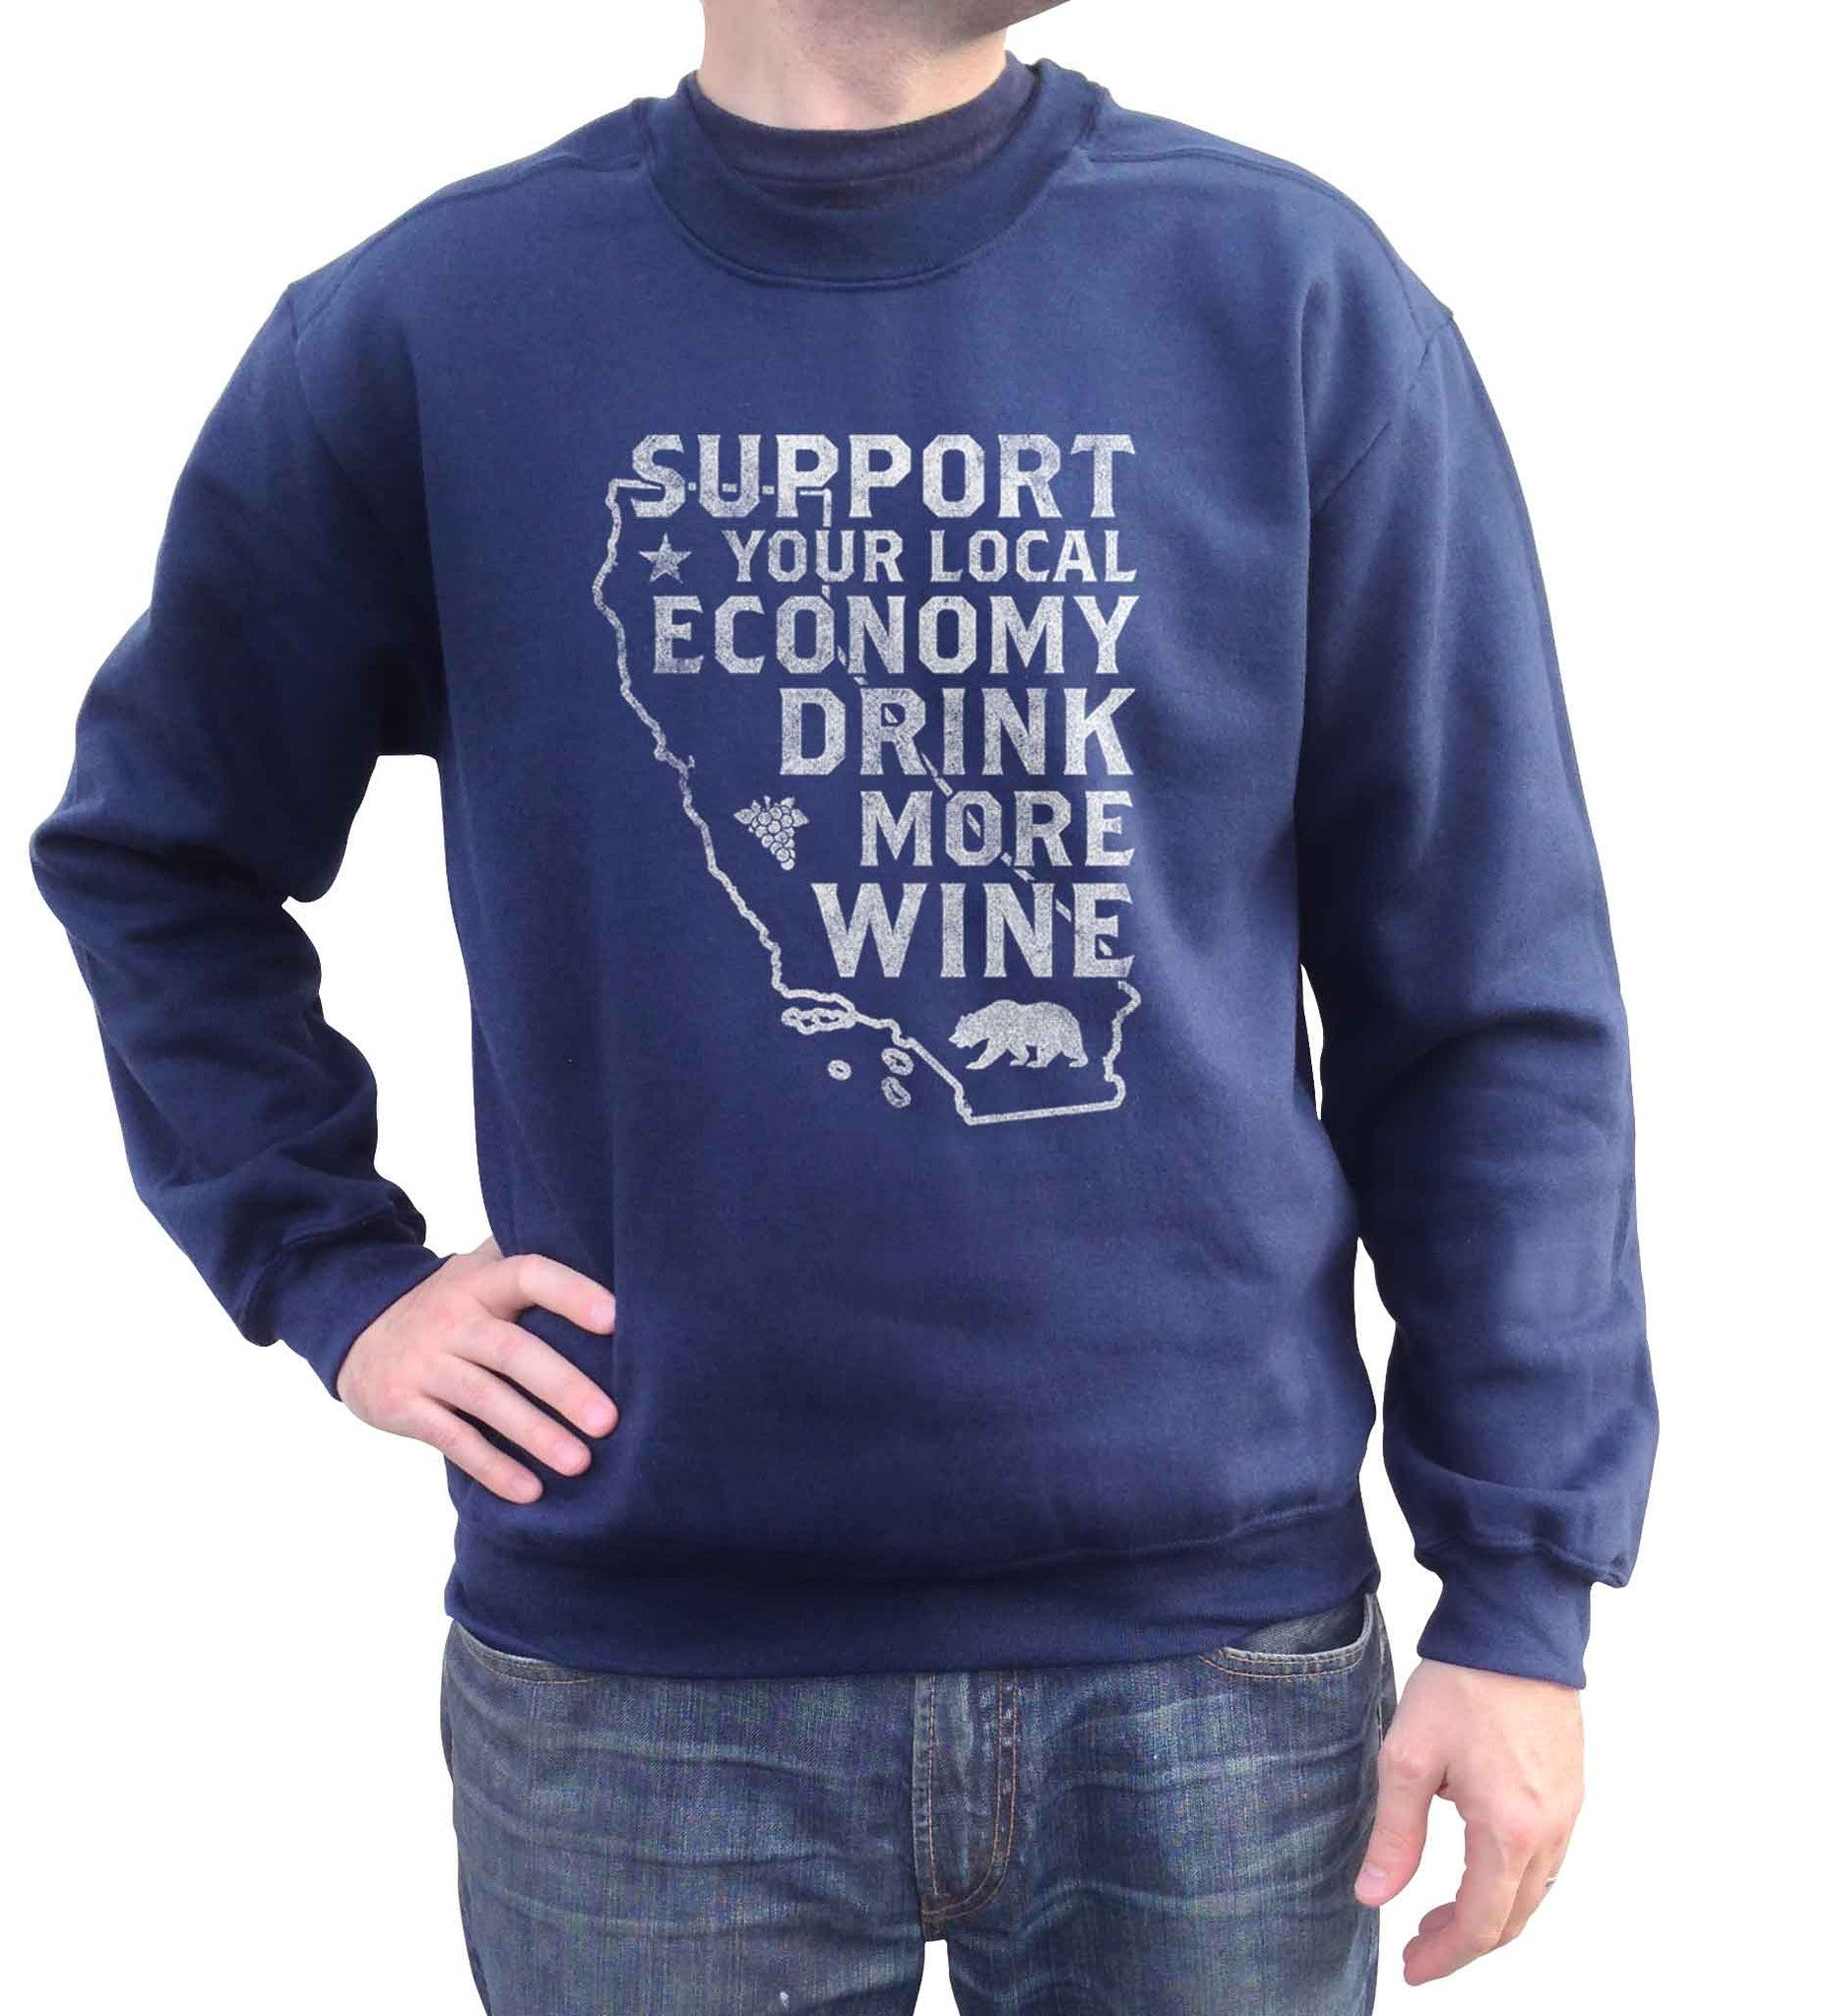 Unisex Support Your Local Economy Drink More Wine Sweatshirt California Sweatshirt